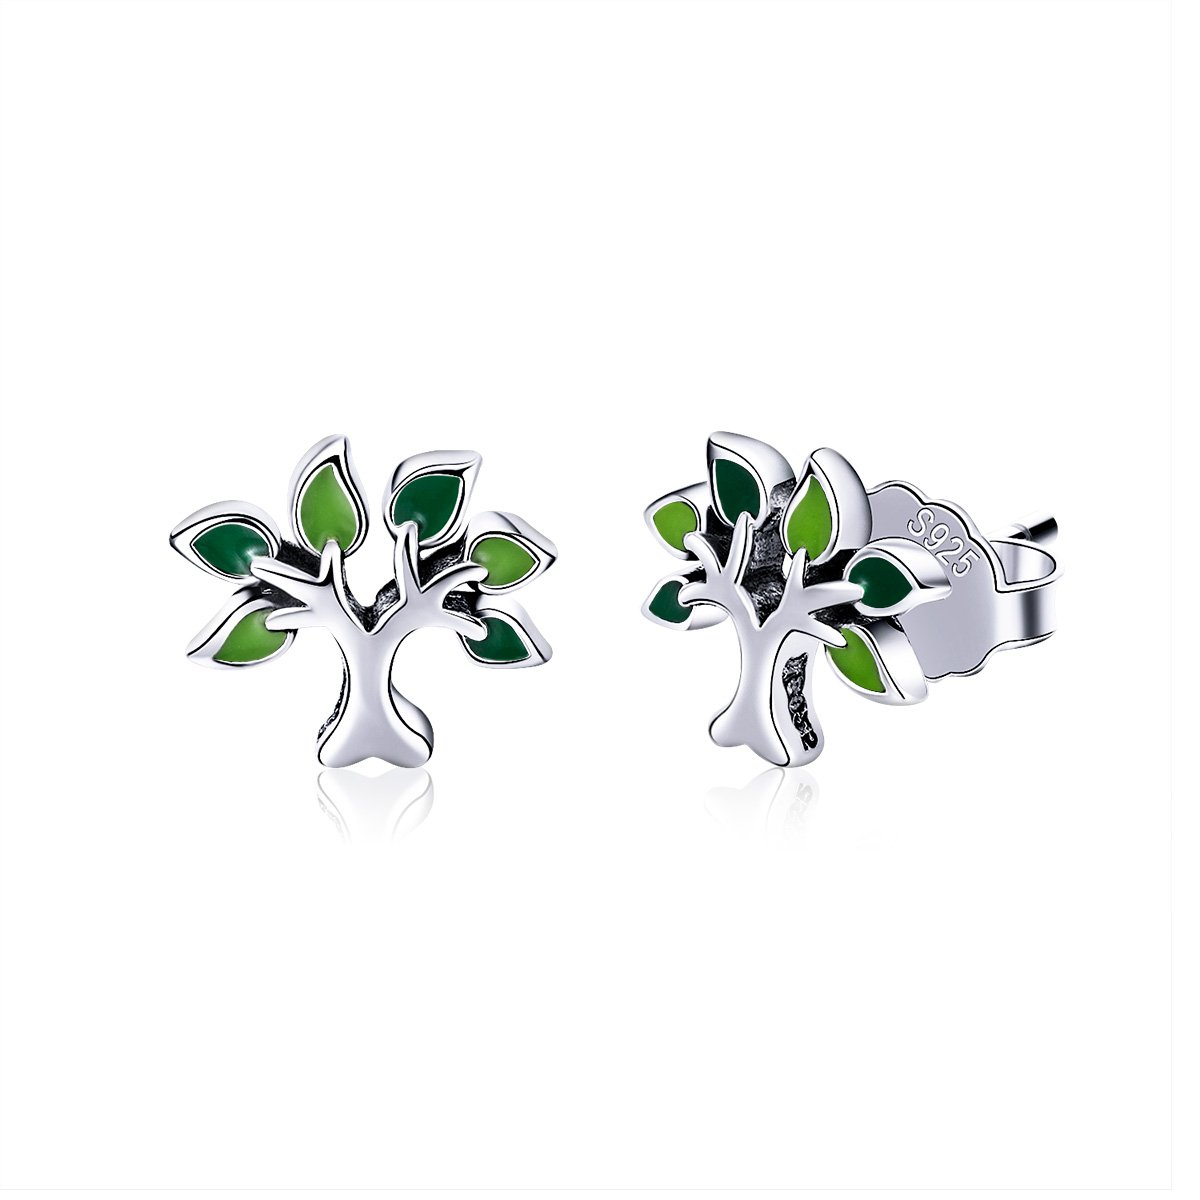 BISAER Tree of Life 925 Sterling Silver Stud Earrings with Green Enamel Leaves, Cute Post Stud Earring Hypoallergenic Jewelry for Women. by BISAER (Image #1)